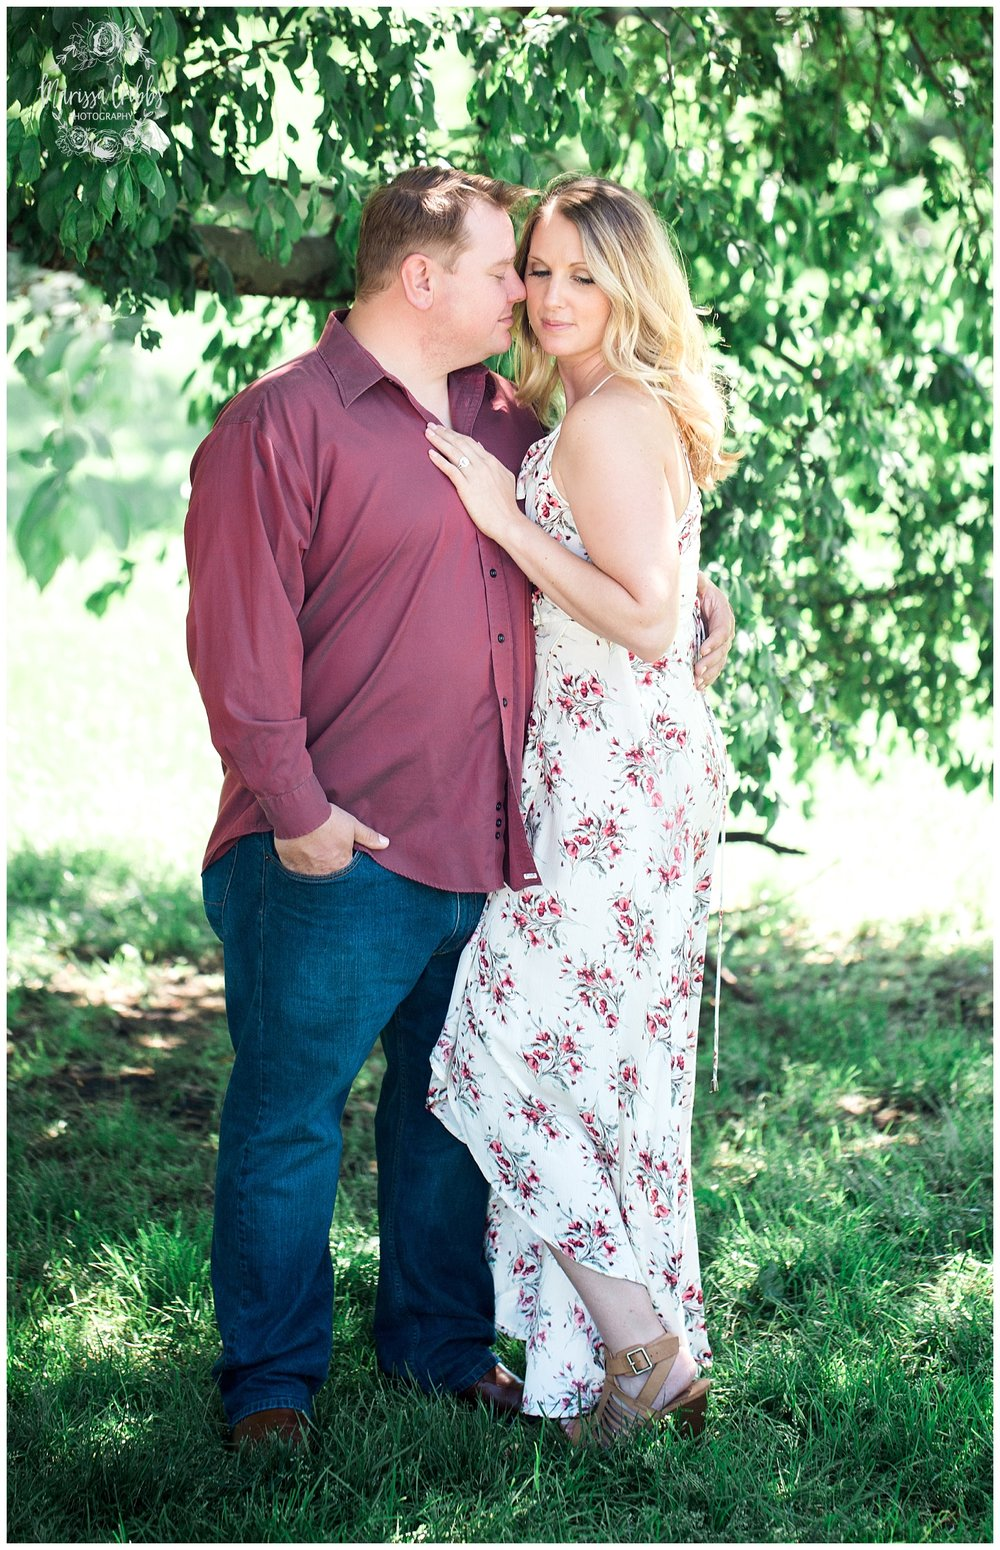 Kristen and Scott | Kansas City Plaza and Loose Park Engagement Photography | Marissa Cribbs Photography_1158.jpg